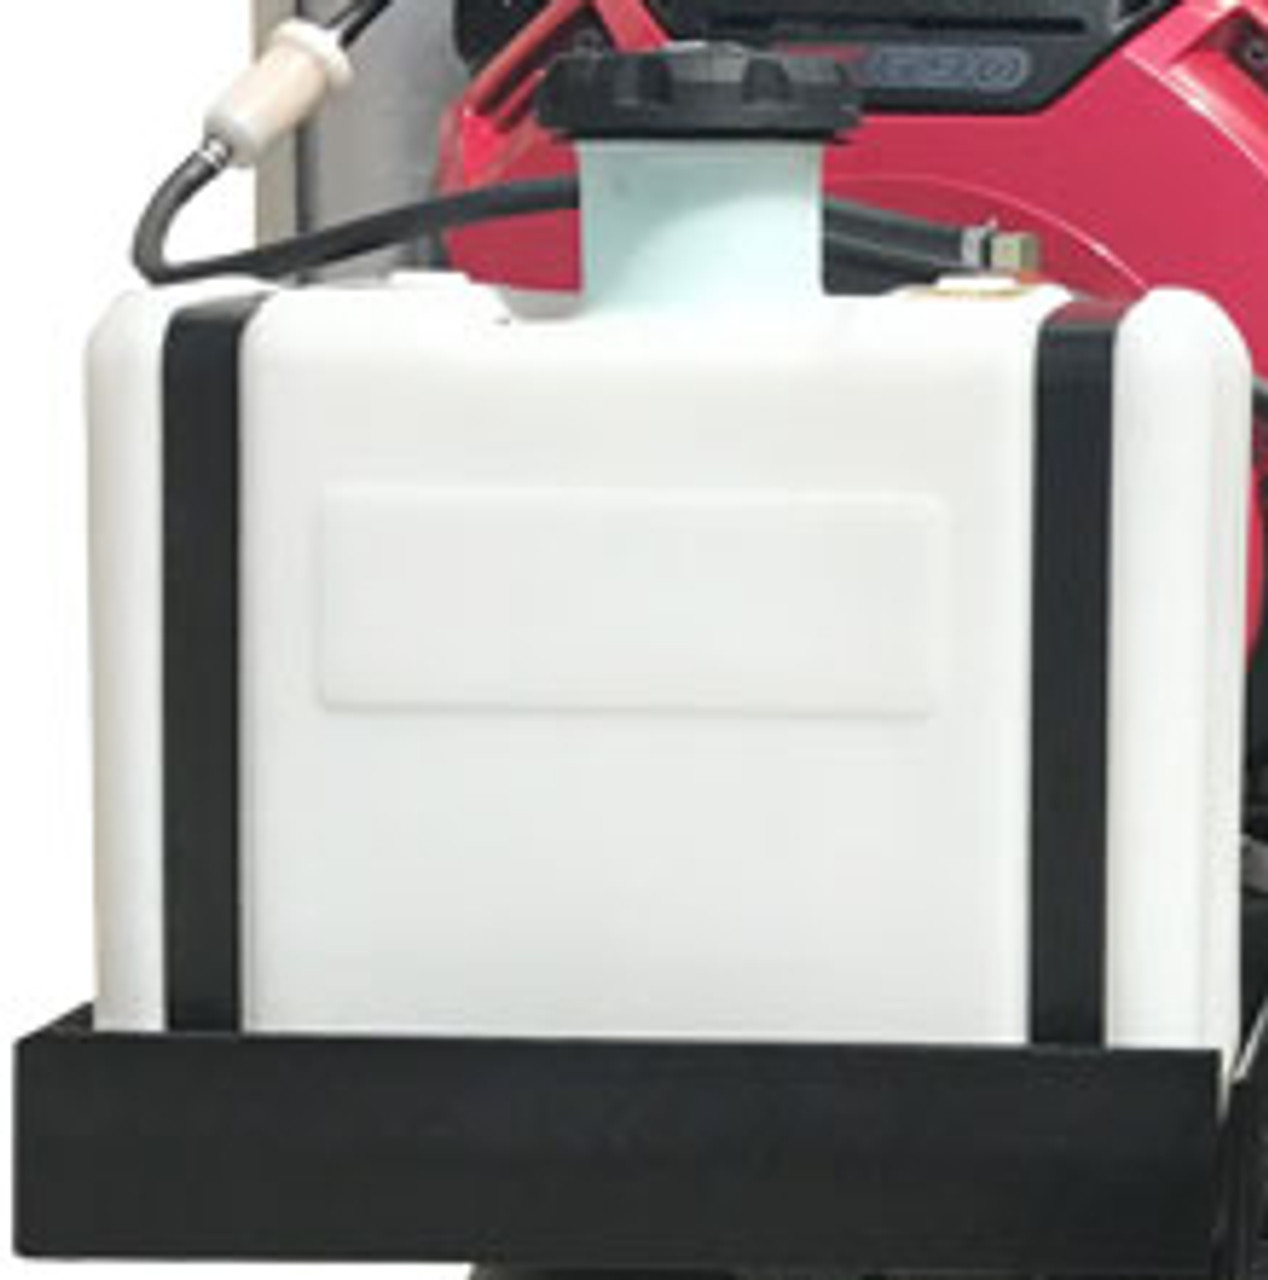 IAT-070363B 6 gallon Fuel Tank for Industrial Gold 18 and 20 HP Honda Gas Drive Units